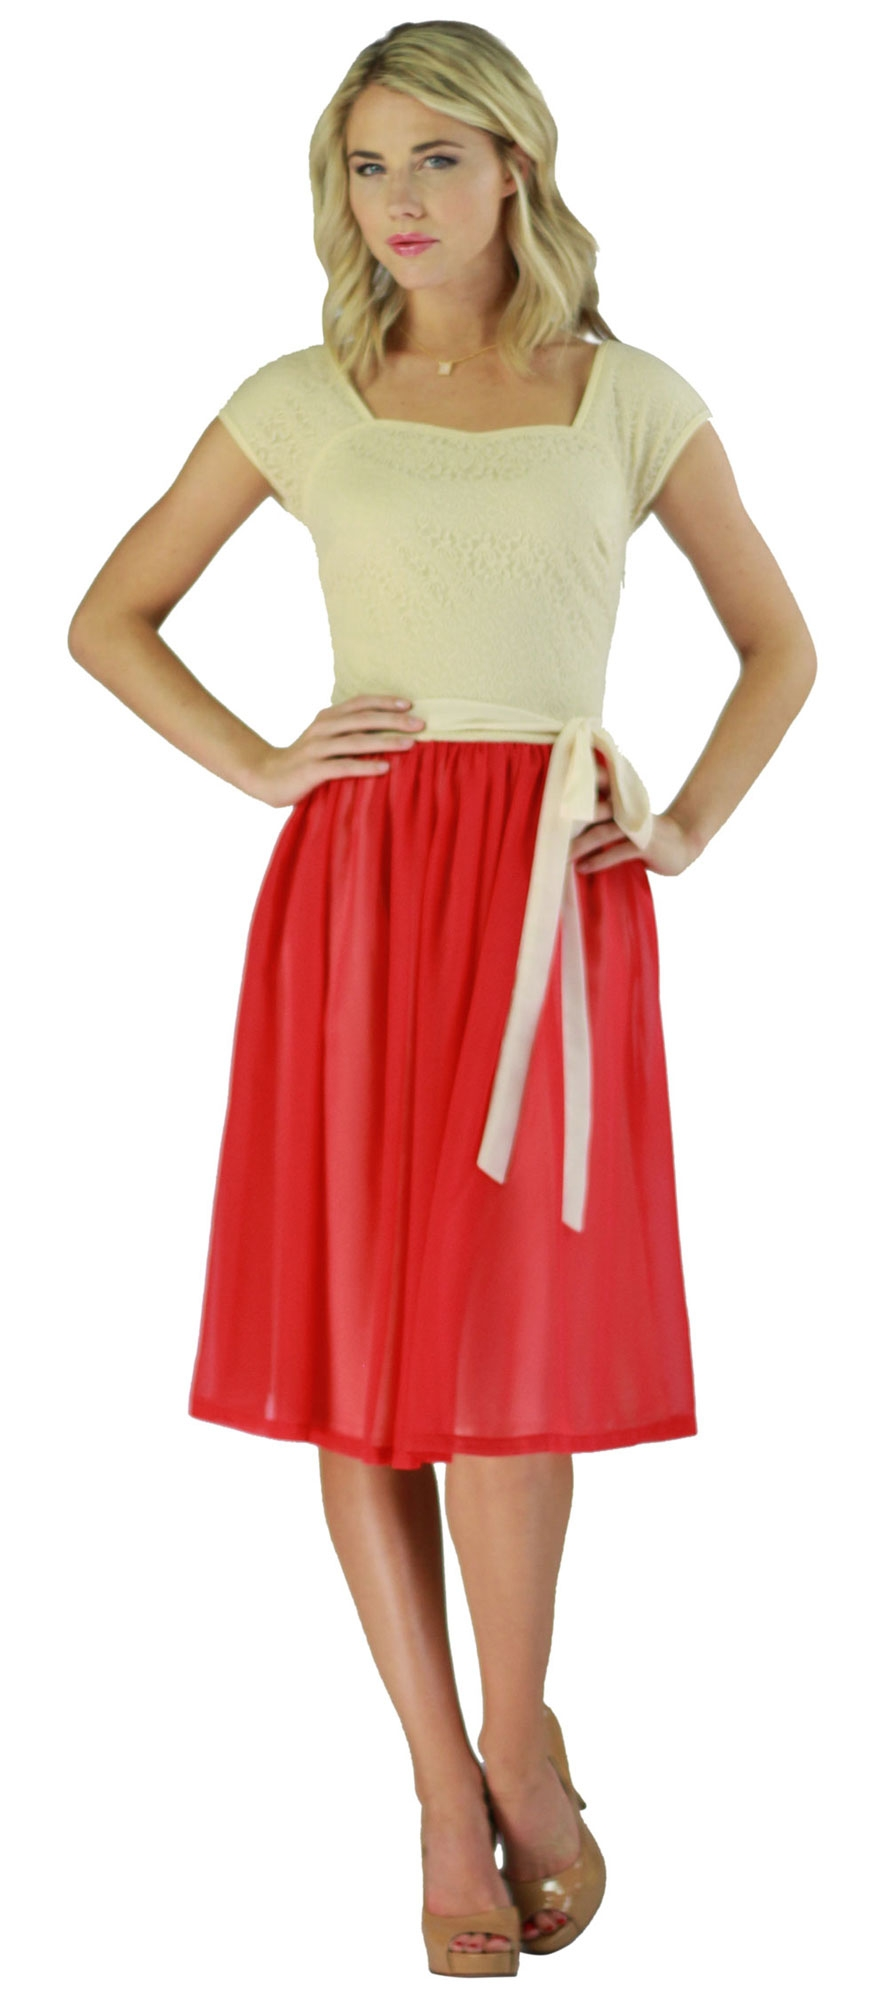 lacy chiffon modest semi formal dress in cream and red